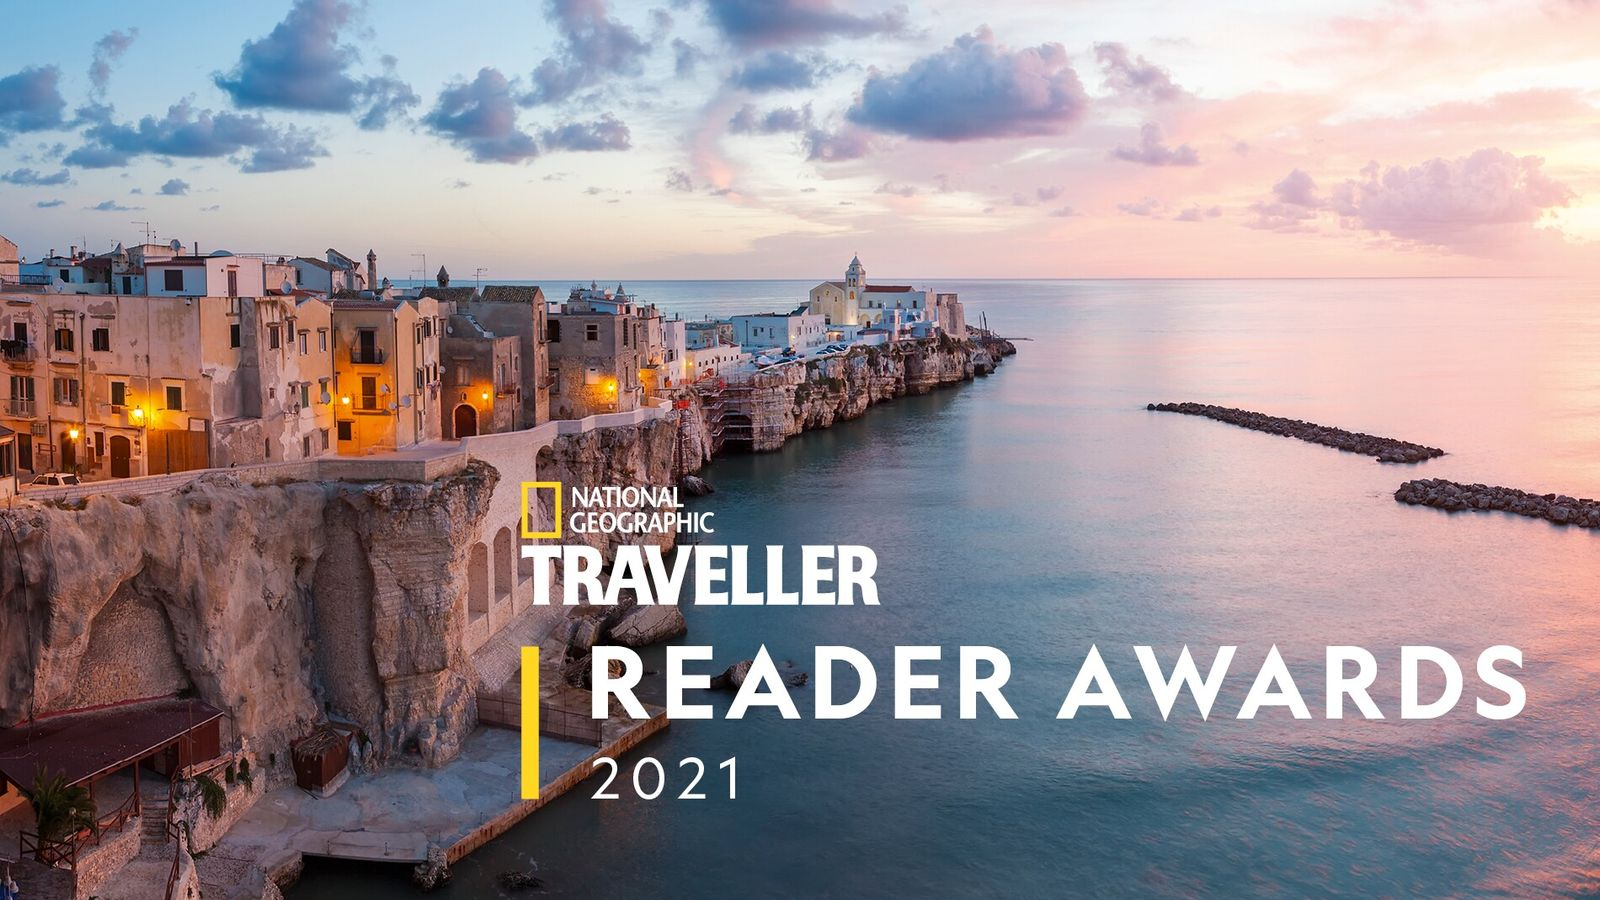 The National Geographic Traveller Reader Awards 2021 is open.